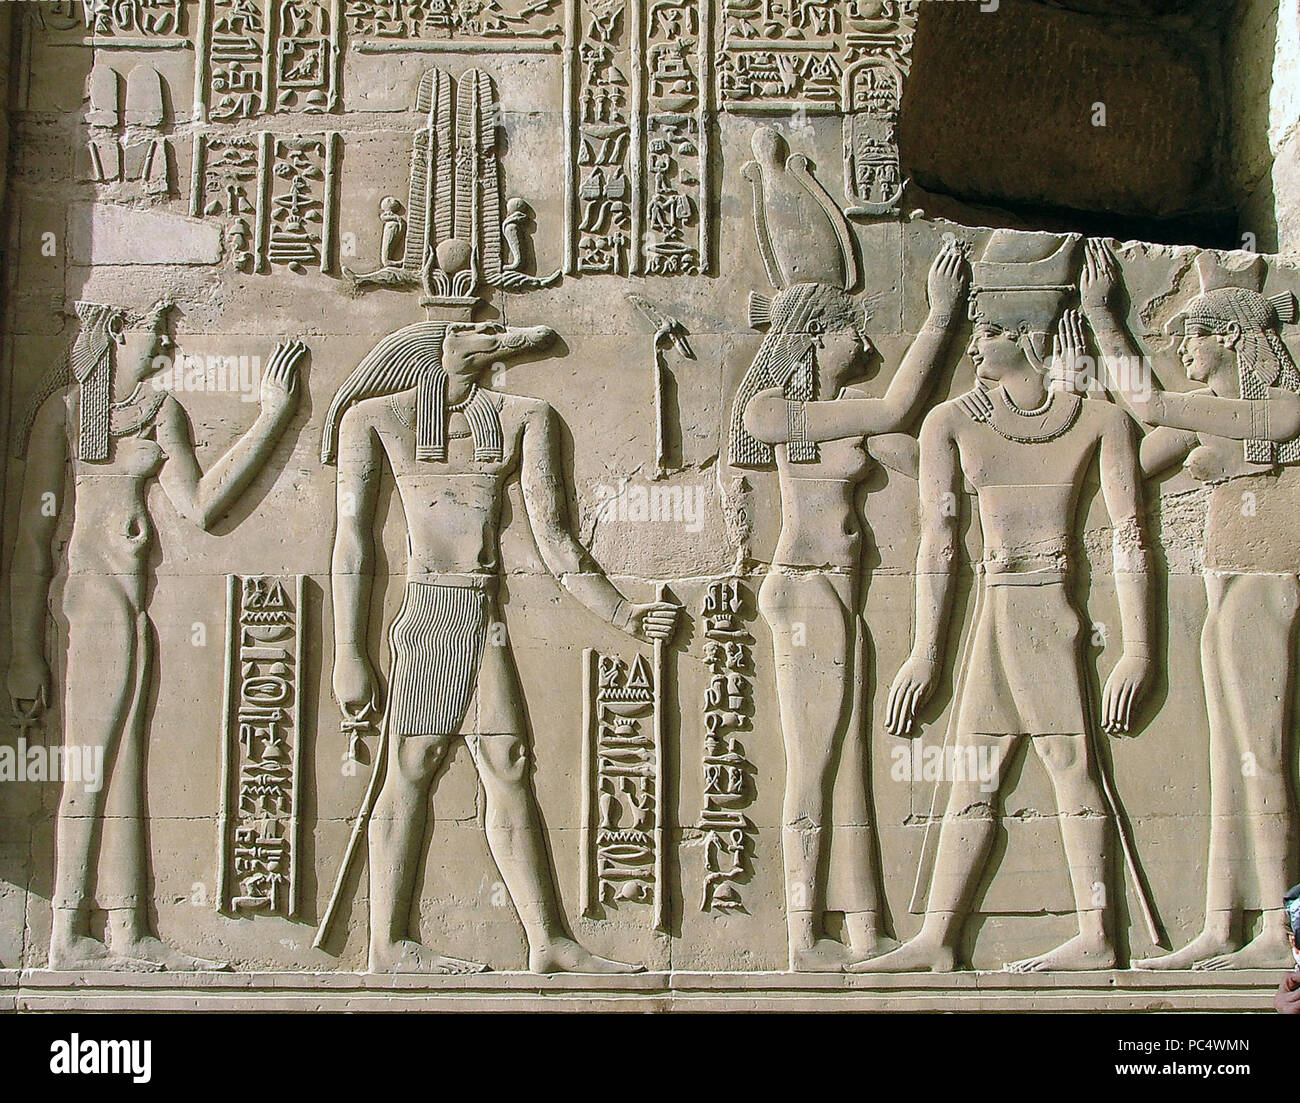 6278. Sobek, ancient Egyptian deity with a crocodile head, relief from the Kom Ombo temple, Egypt. Stock Photo